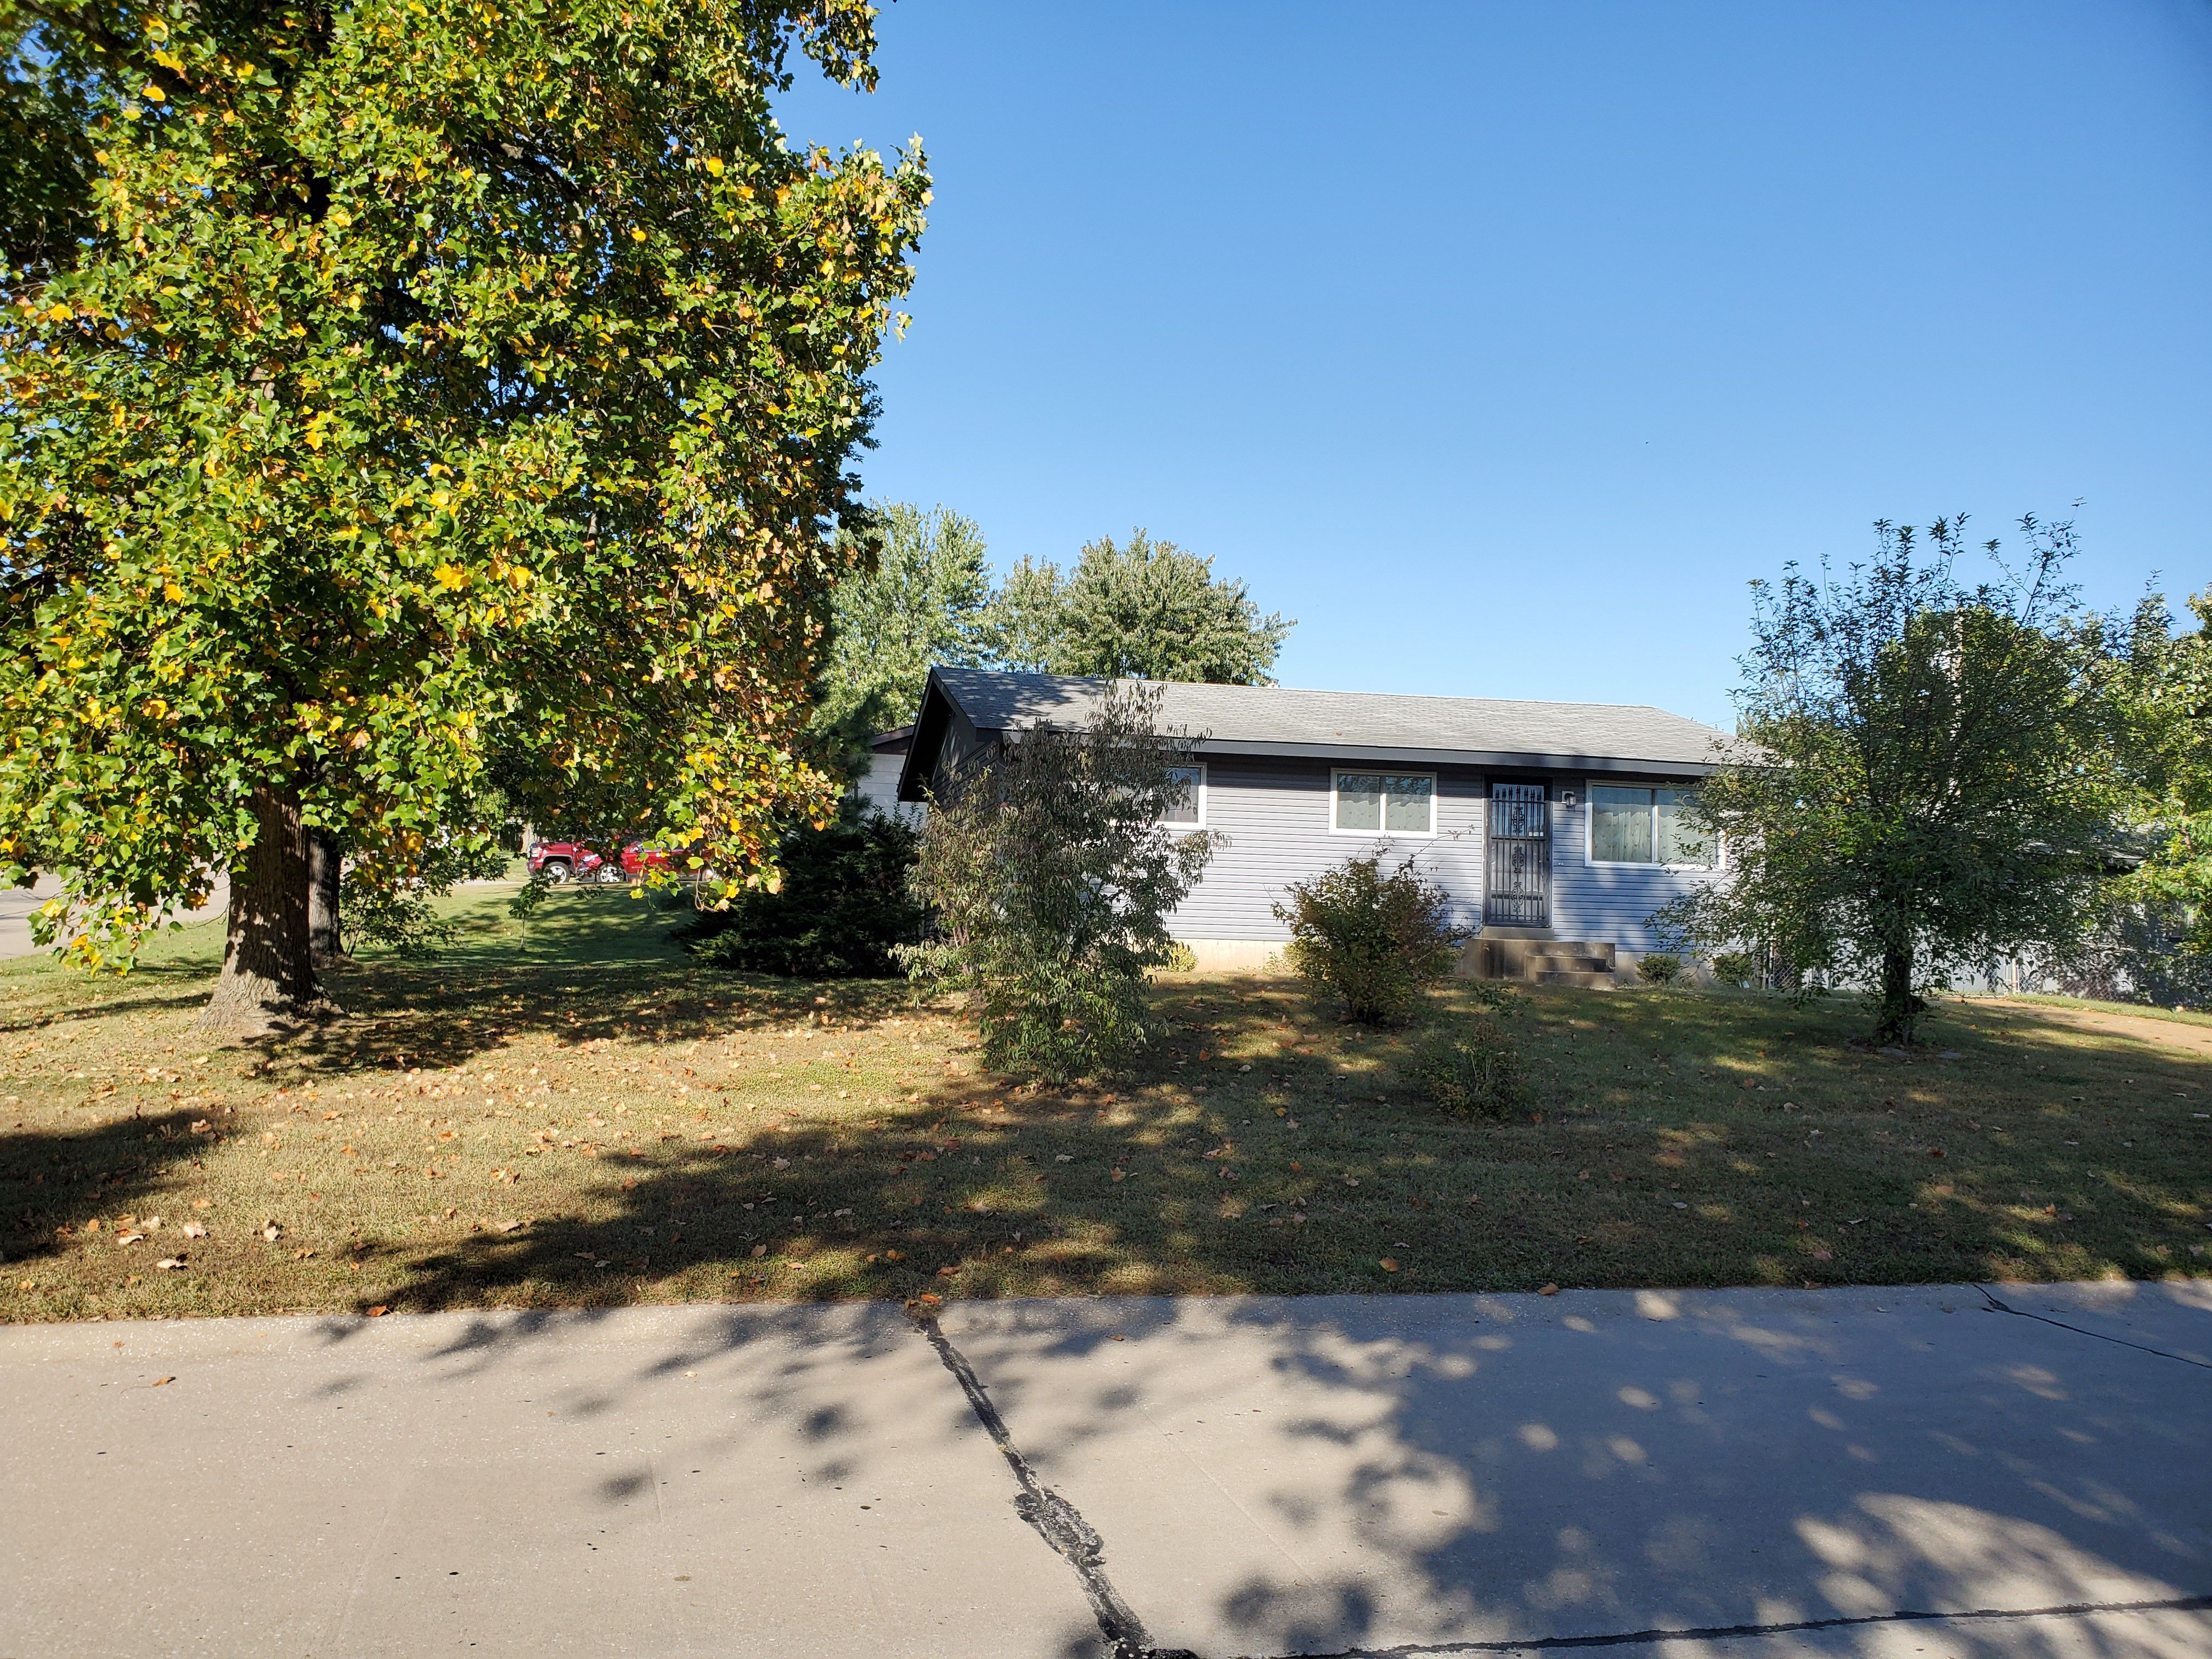 South County House For Rent 1225.00 2B1B image 1